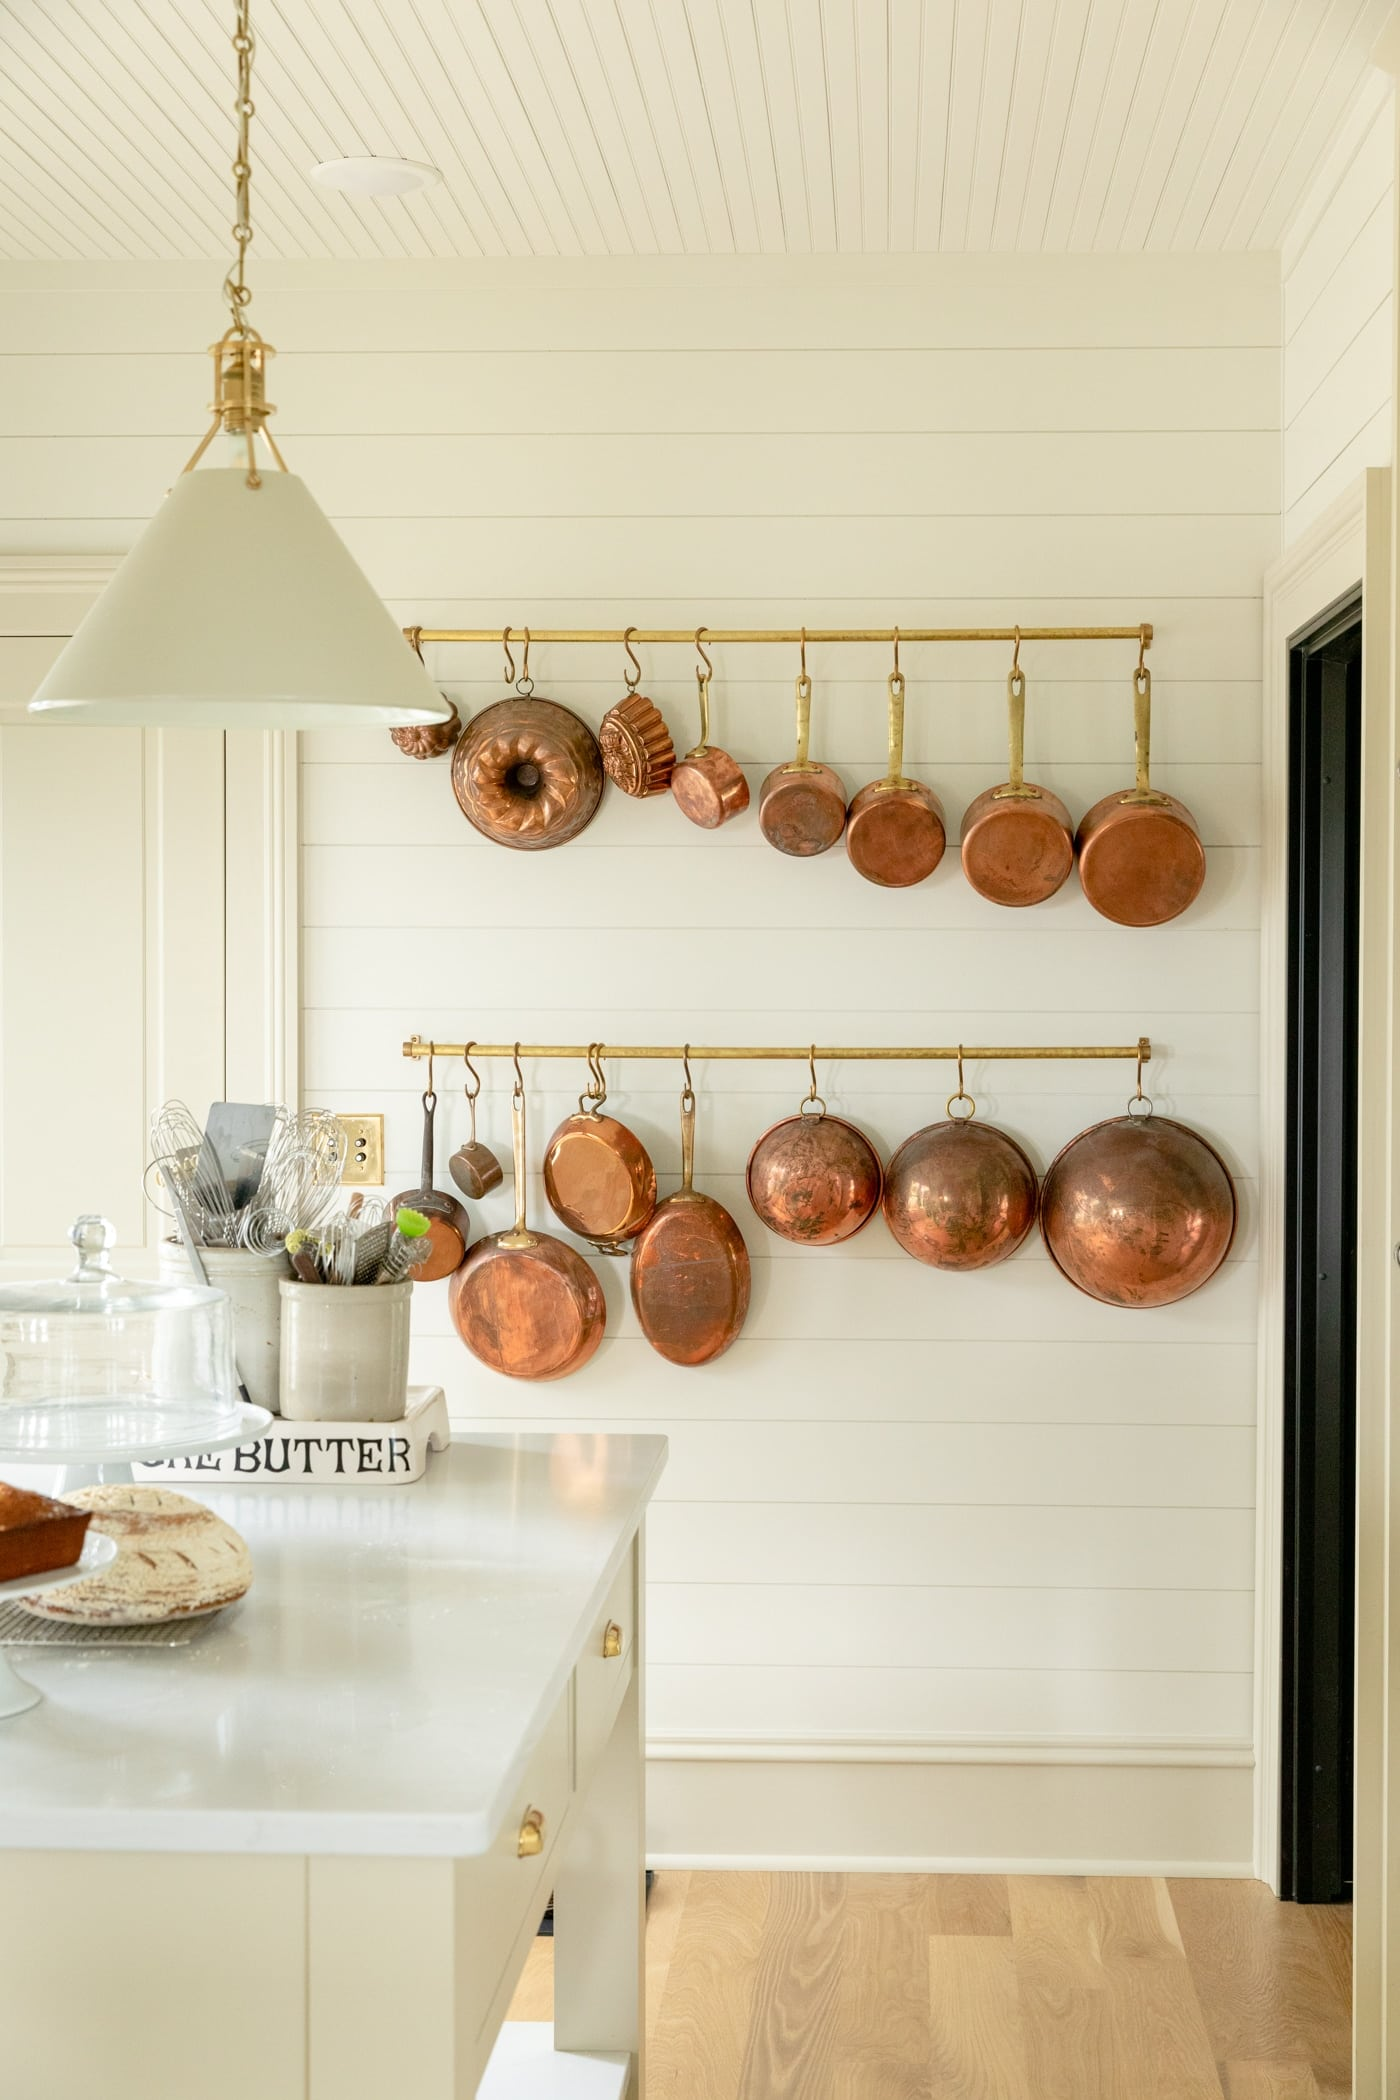 Lots of copper pots hanging on a brass rail with ship lap and large baseboard all with light wood floors